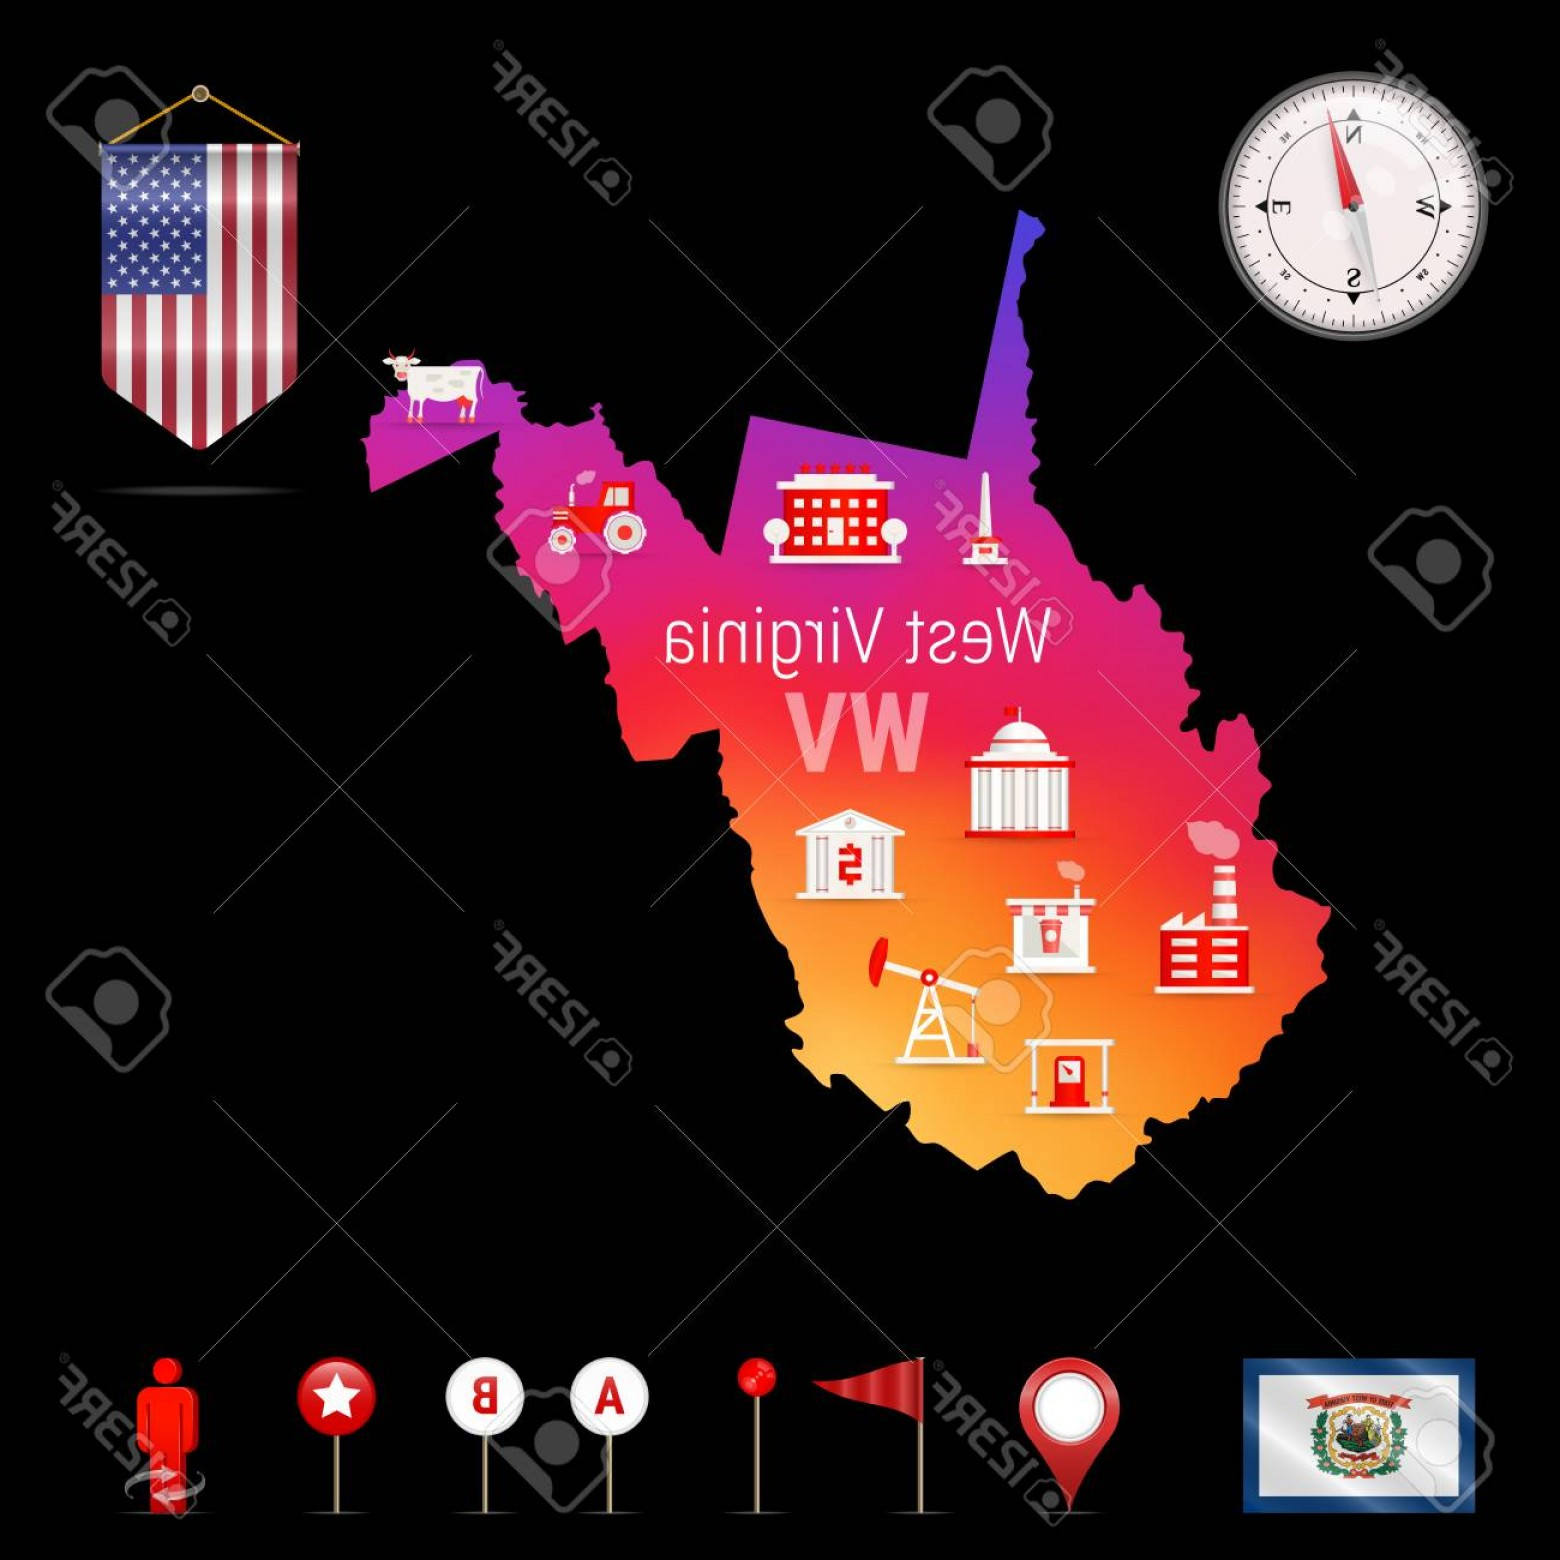 West Virginia Vector Files: Photostock Vector West Virginia Vector Map Night View Compass Icon Map Navigation Elements Pennant Flag Of The United